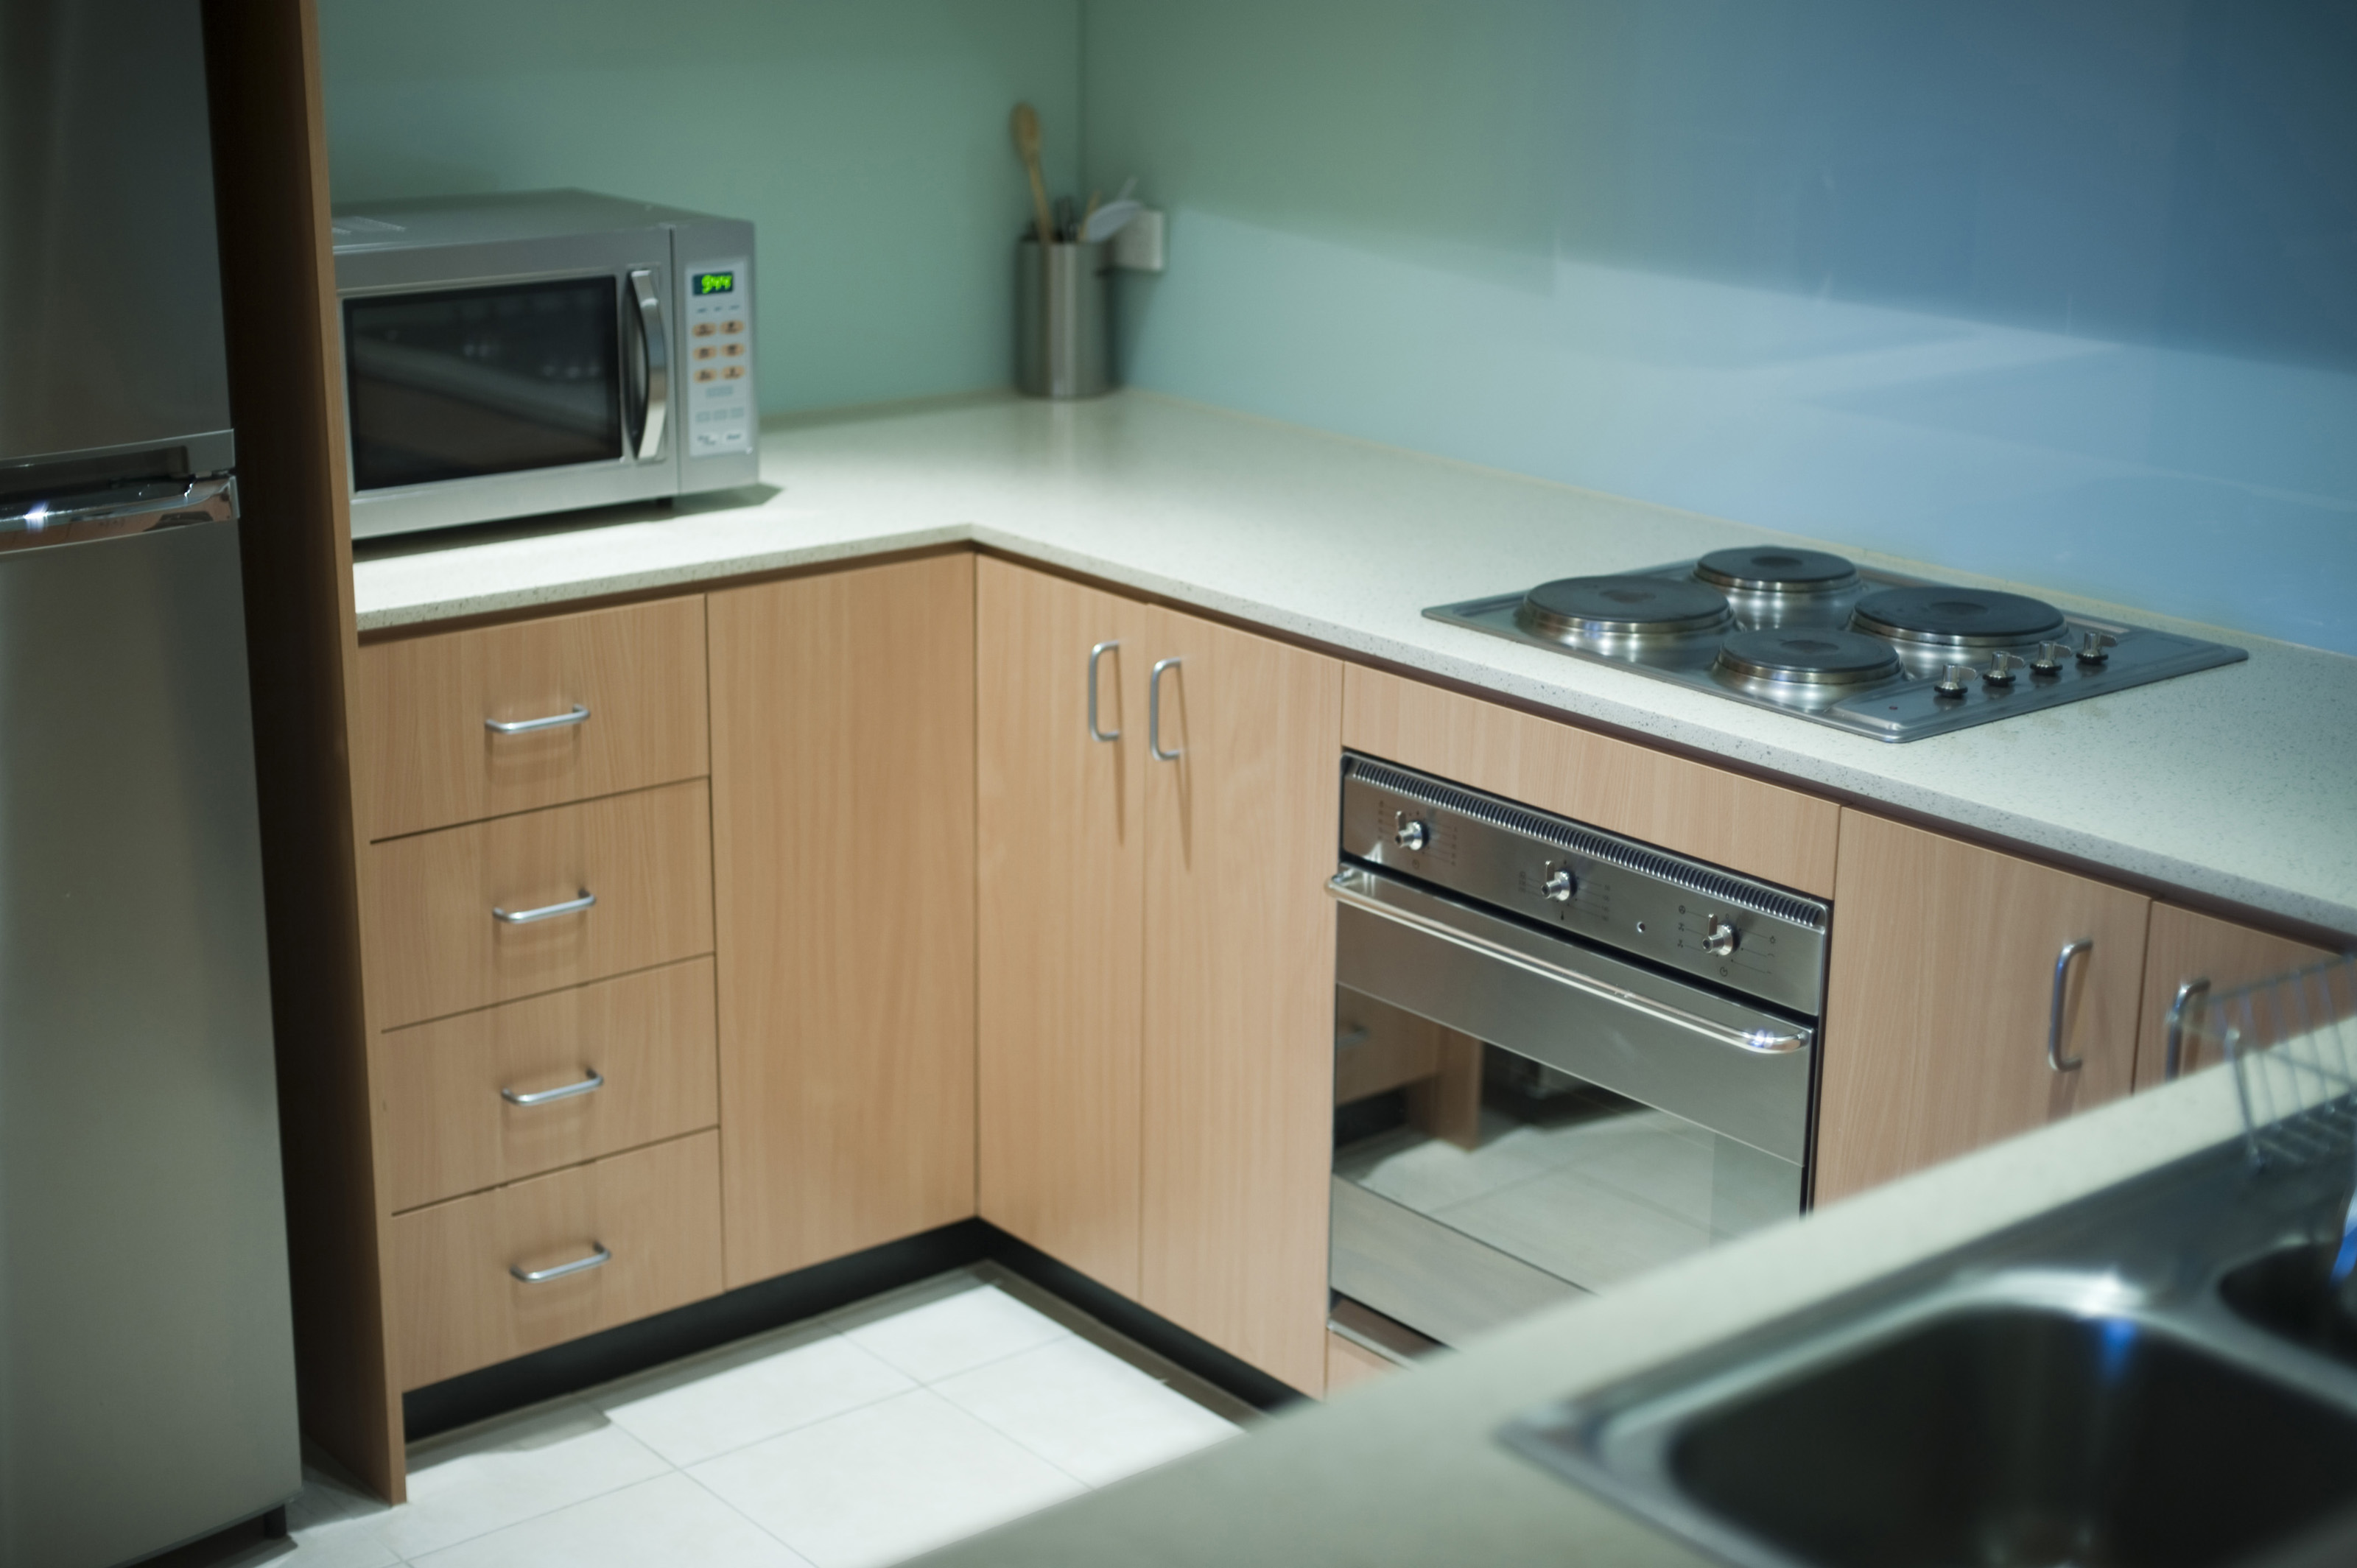 Modern kitchen stoves - Neat Compact Modern Kitchen With A Fridge Undercounter Stove And Hob Sink And Microwave